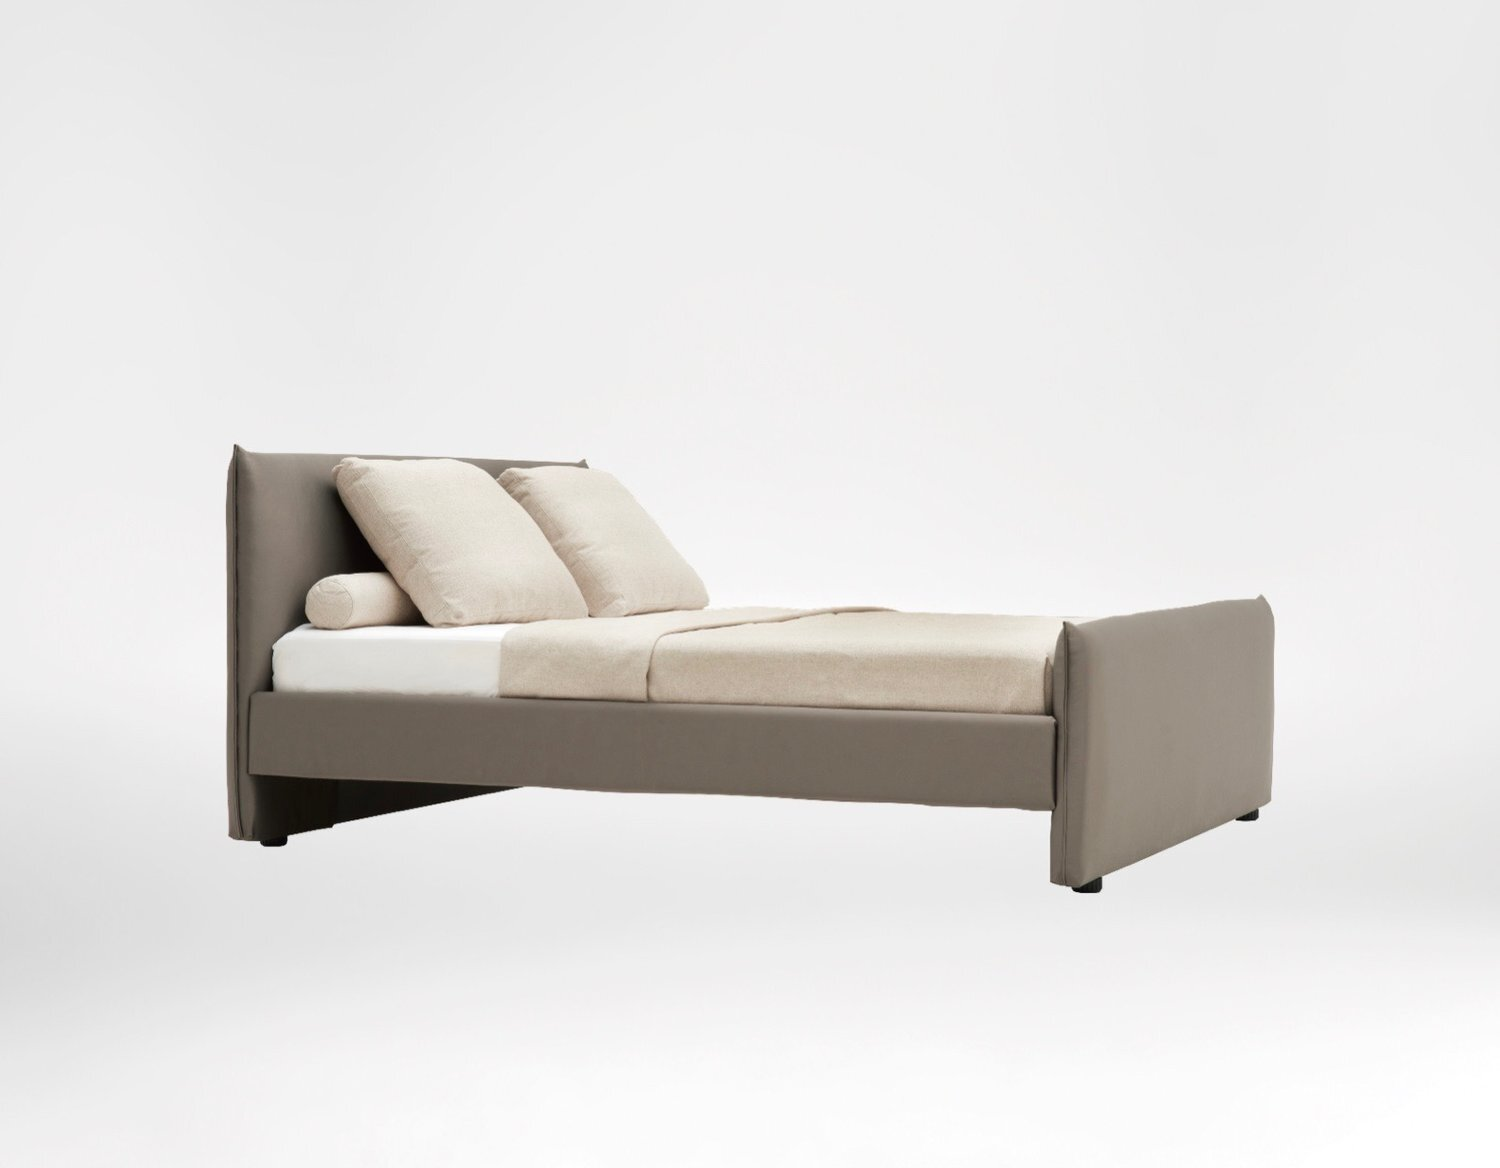 Era bed - Refined and outstandingly chic, the Era Bed echoes old time glamour in a contemporary fashion.